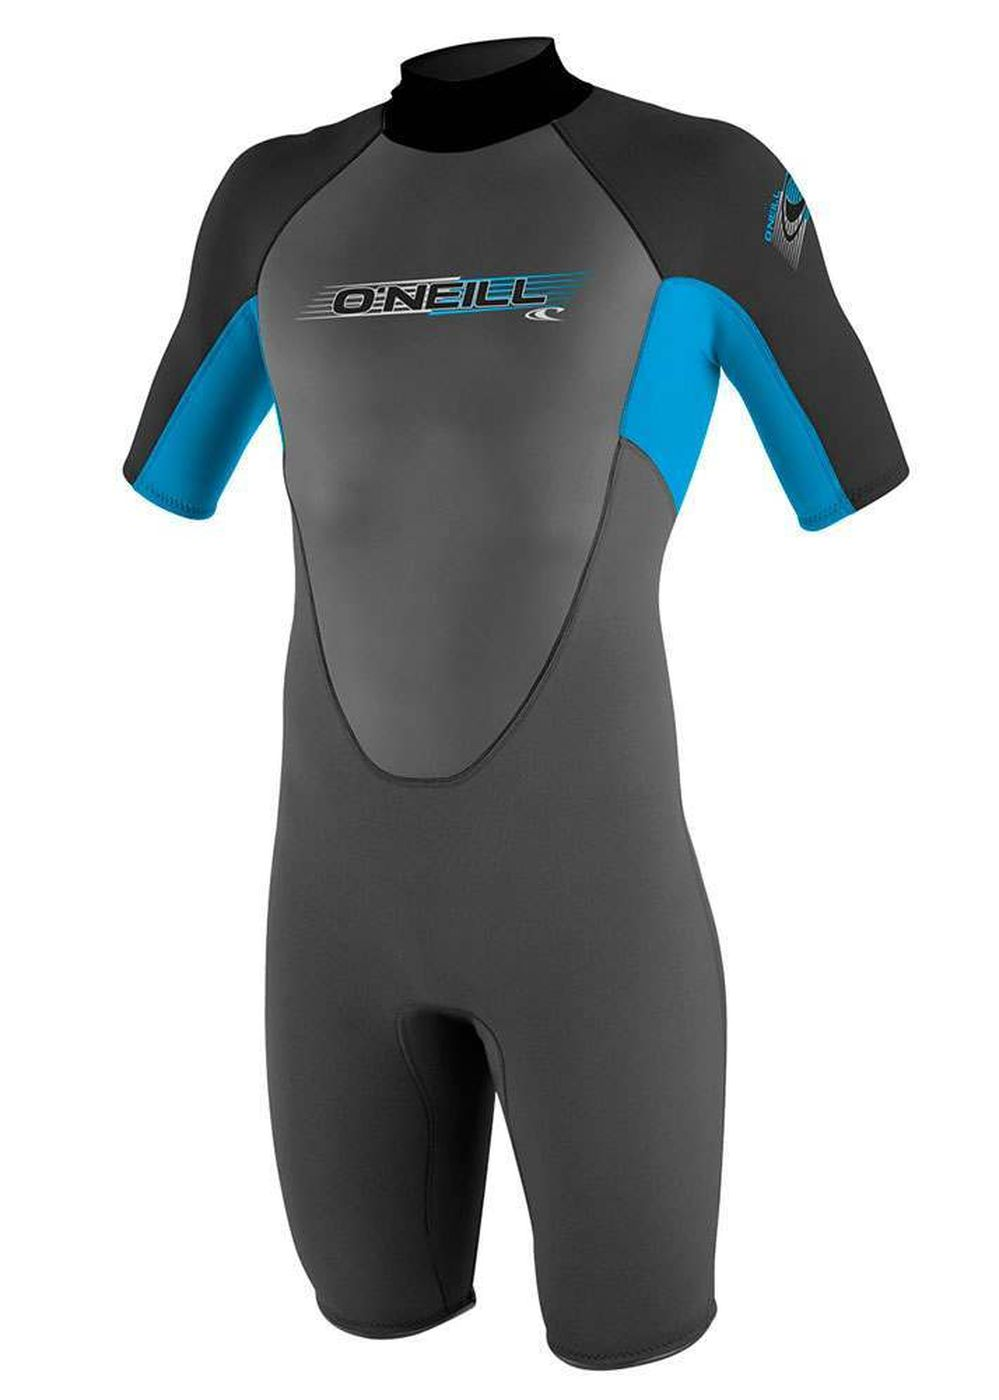 Oneill Reactor Spring 2mm Shorty Wetsuit Gra/tahi Picture